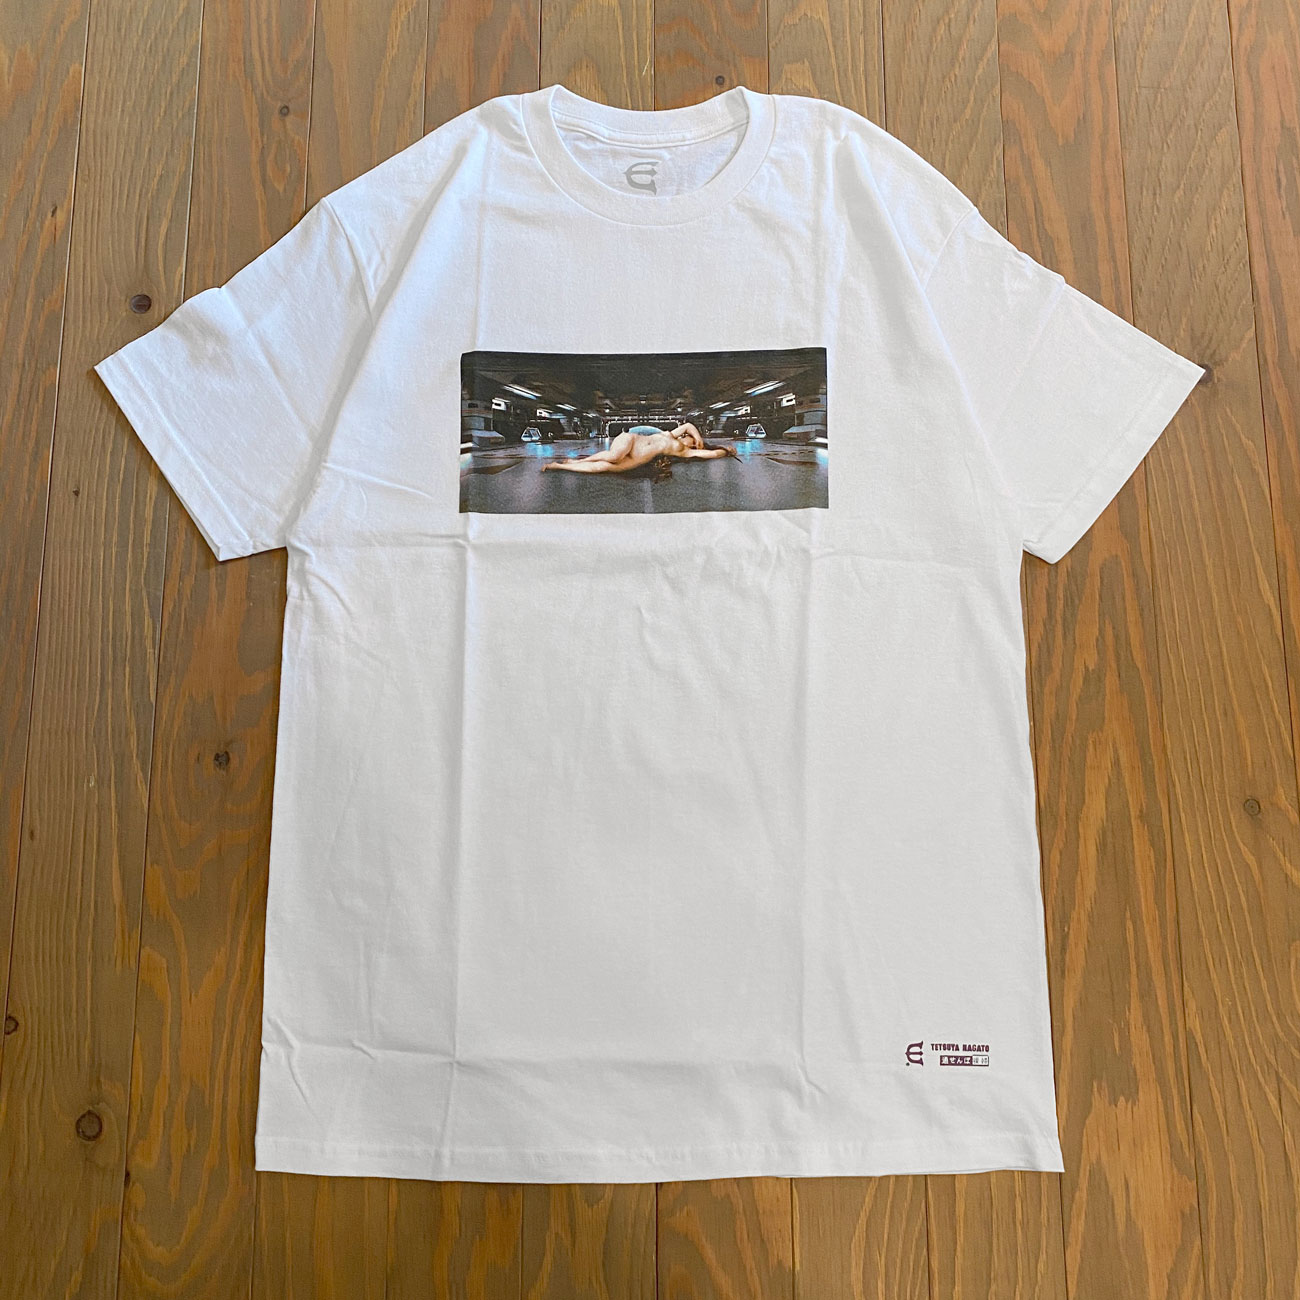 EVISEN NAKED DEFENSE S/S TEE WHITE